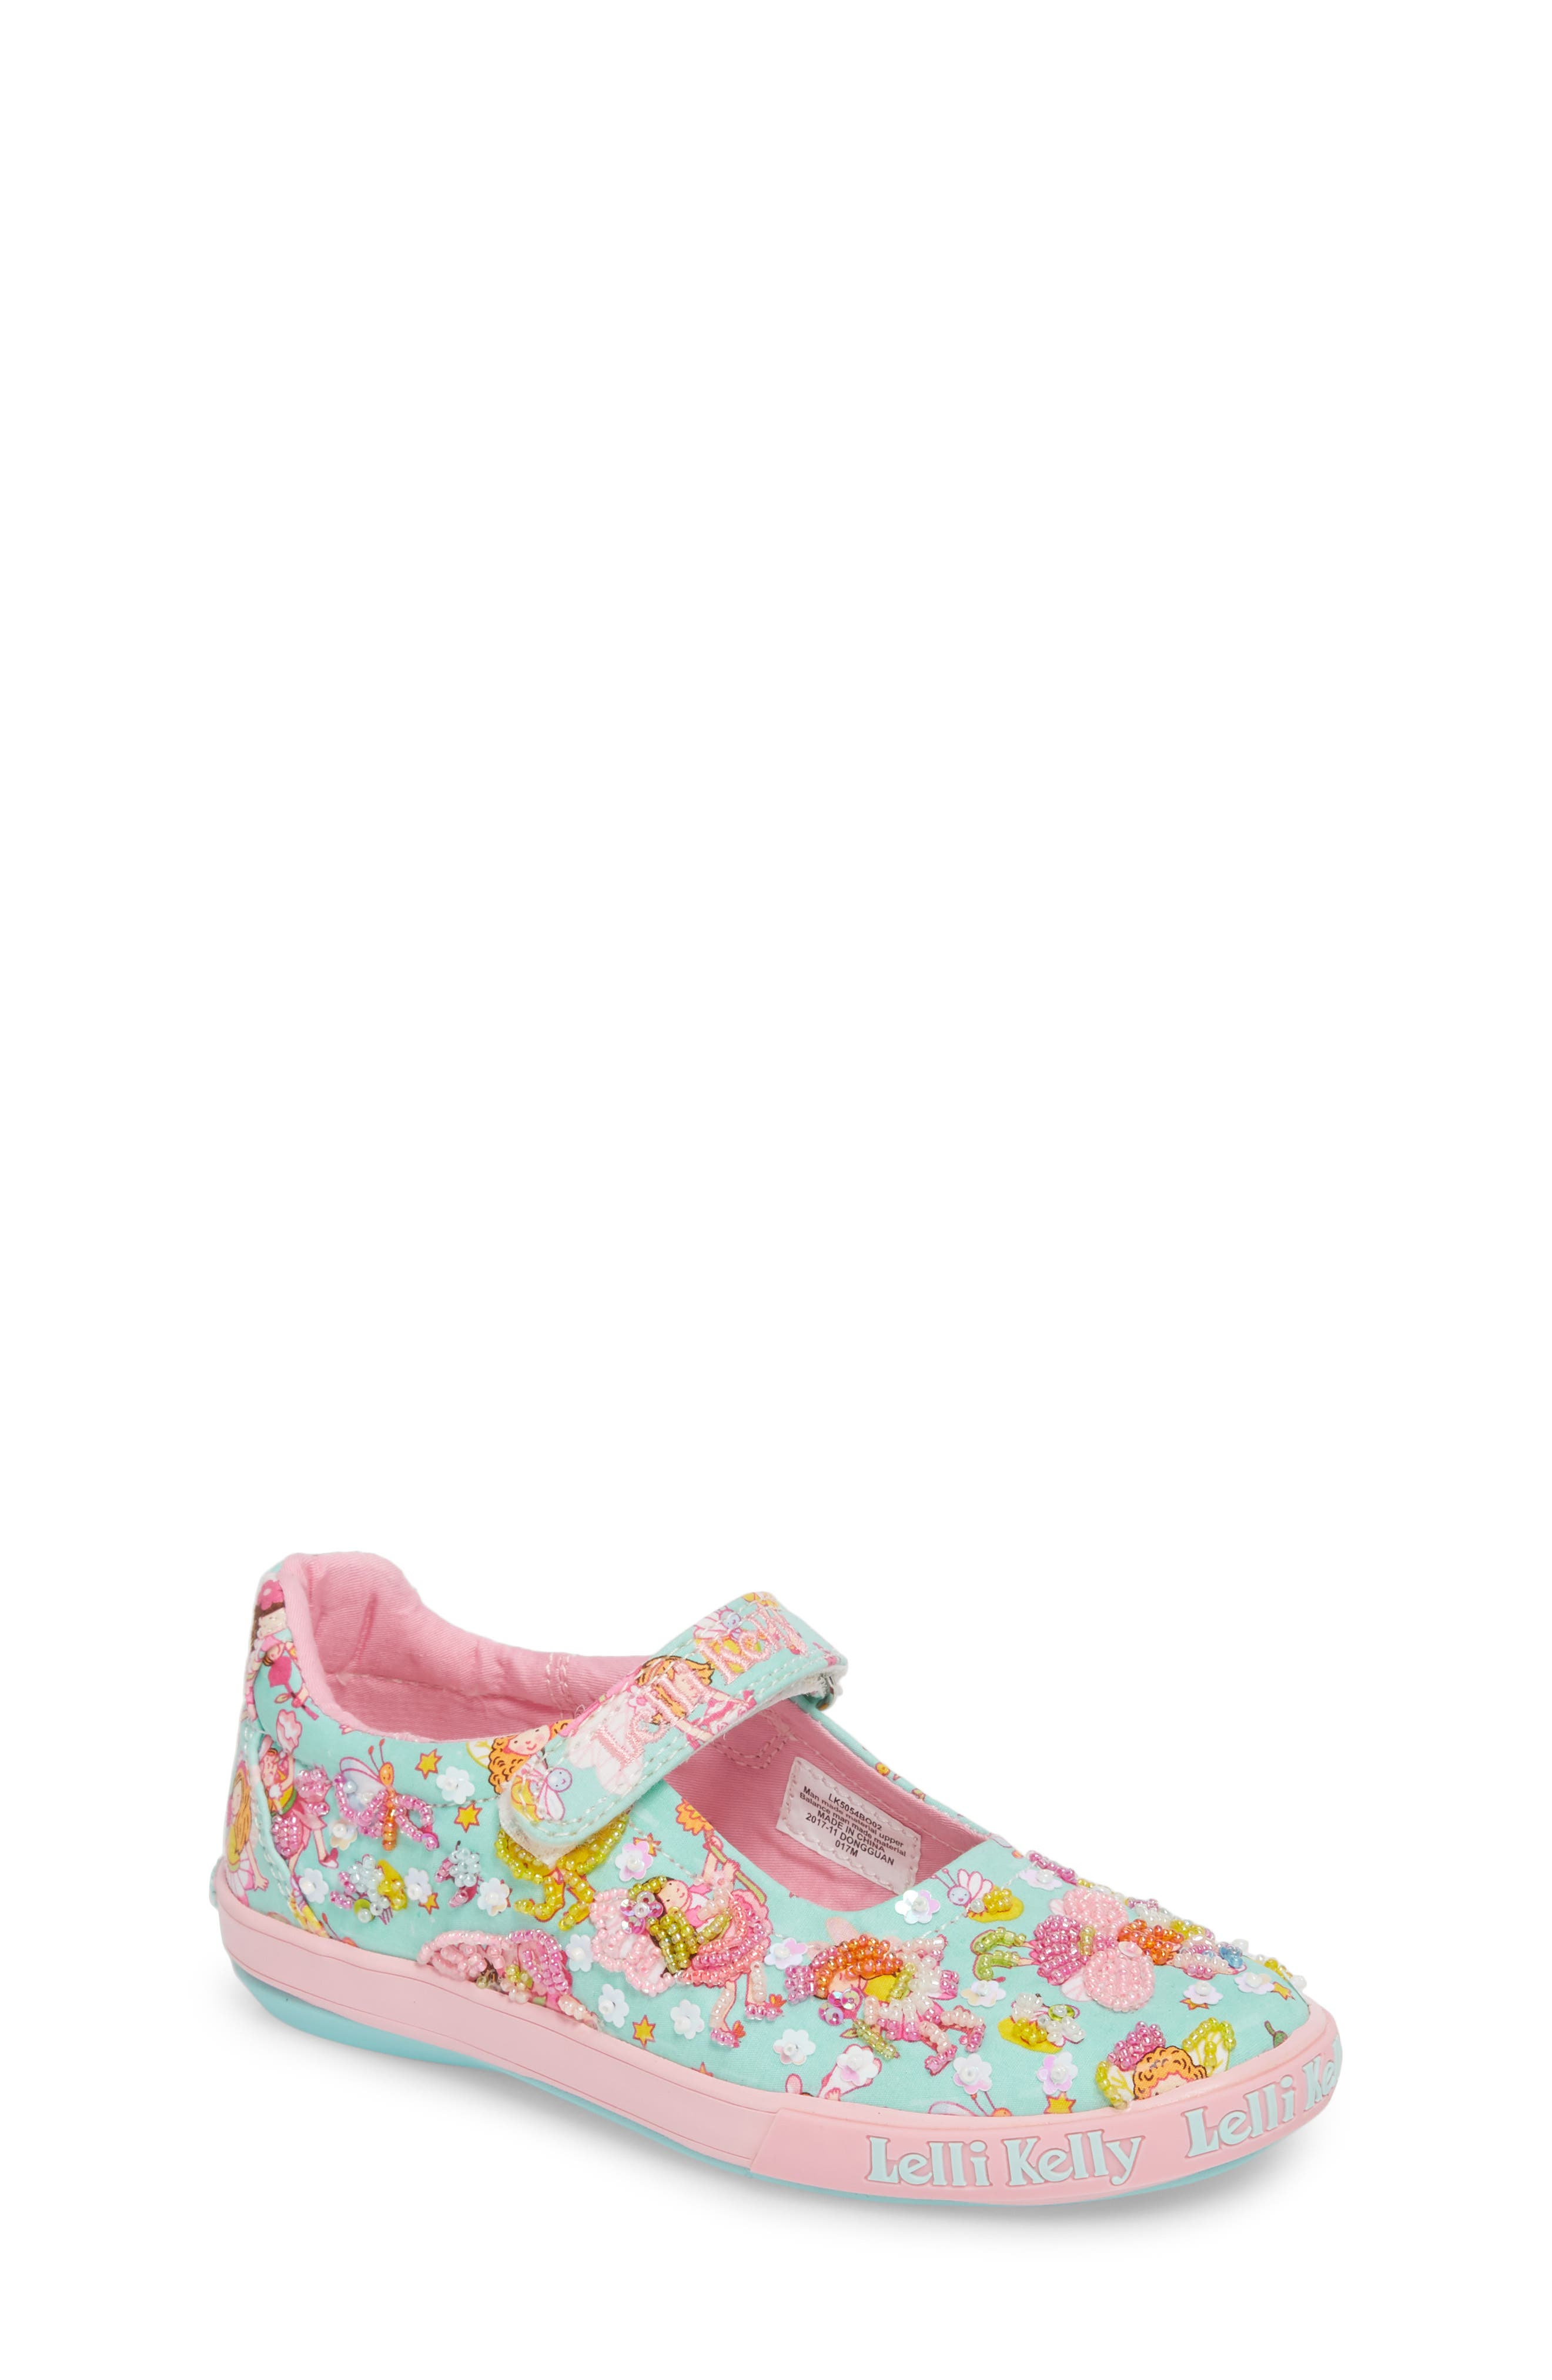 Beaded Mary Jane Sneaker,                         Main,                         color, TURQUOISE